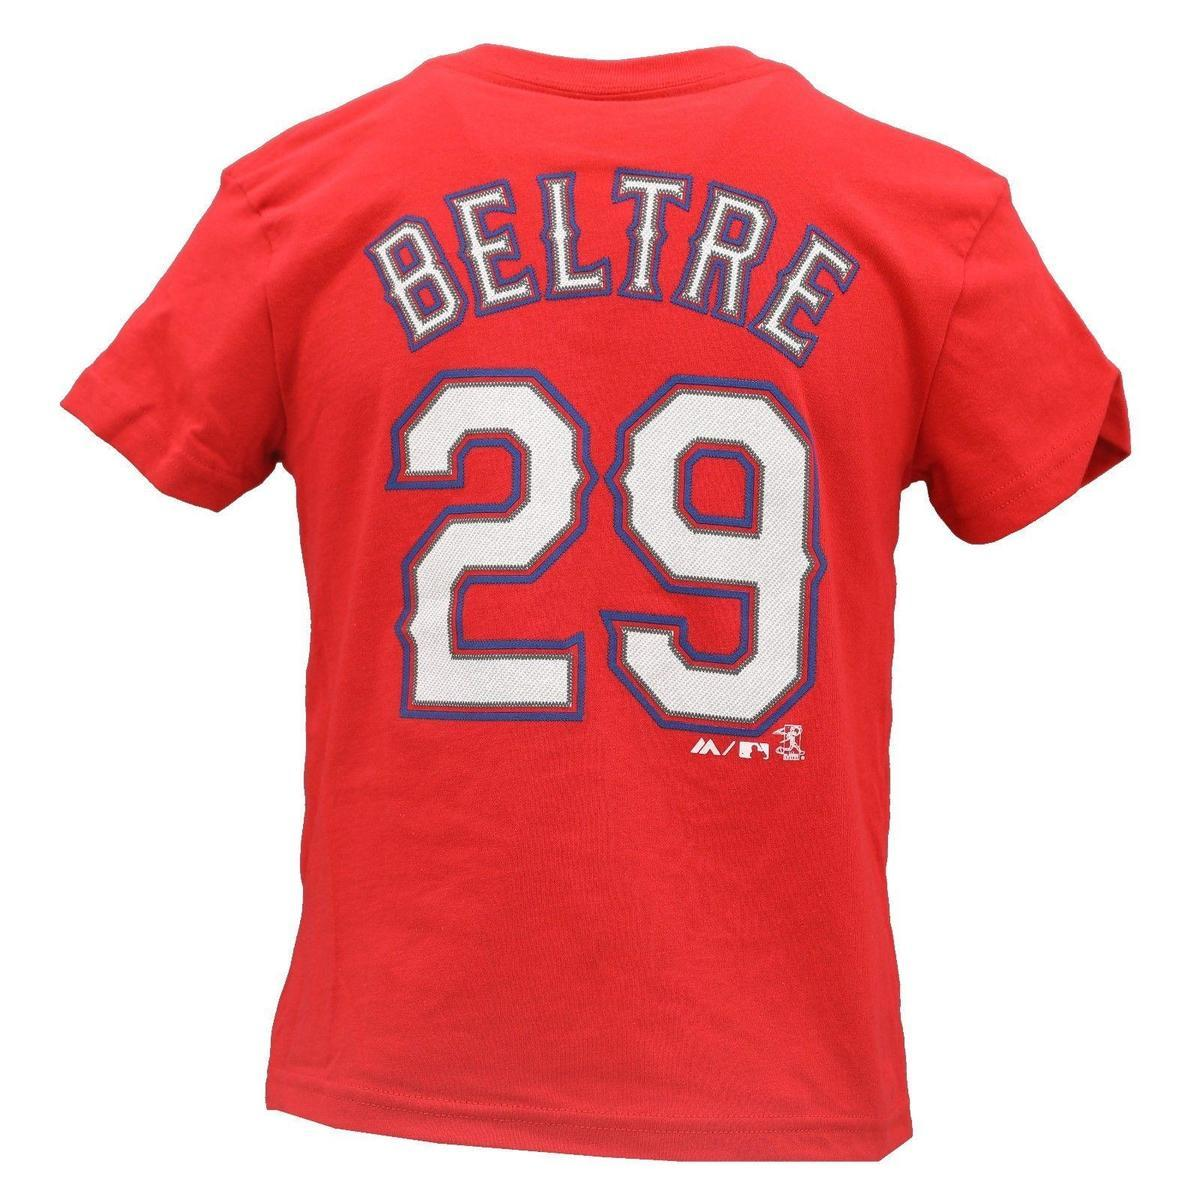 Official Majestic Kids Size Adrian Beltre T-Shirt New Tags Print 100% Cotton Short Sleeve T-Shirt Comfortable t shirt Casual